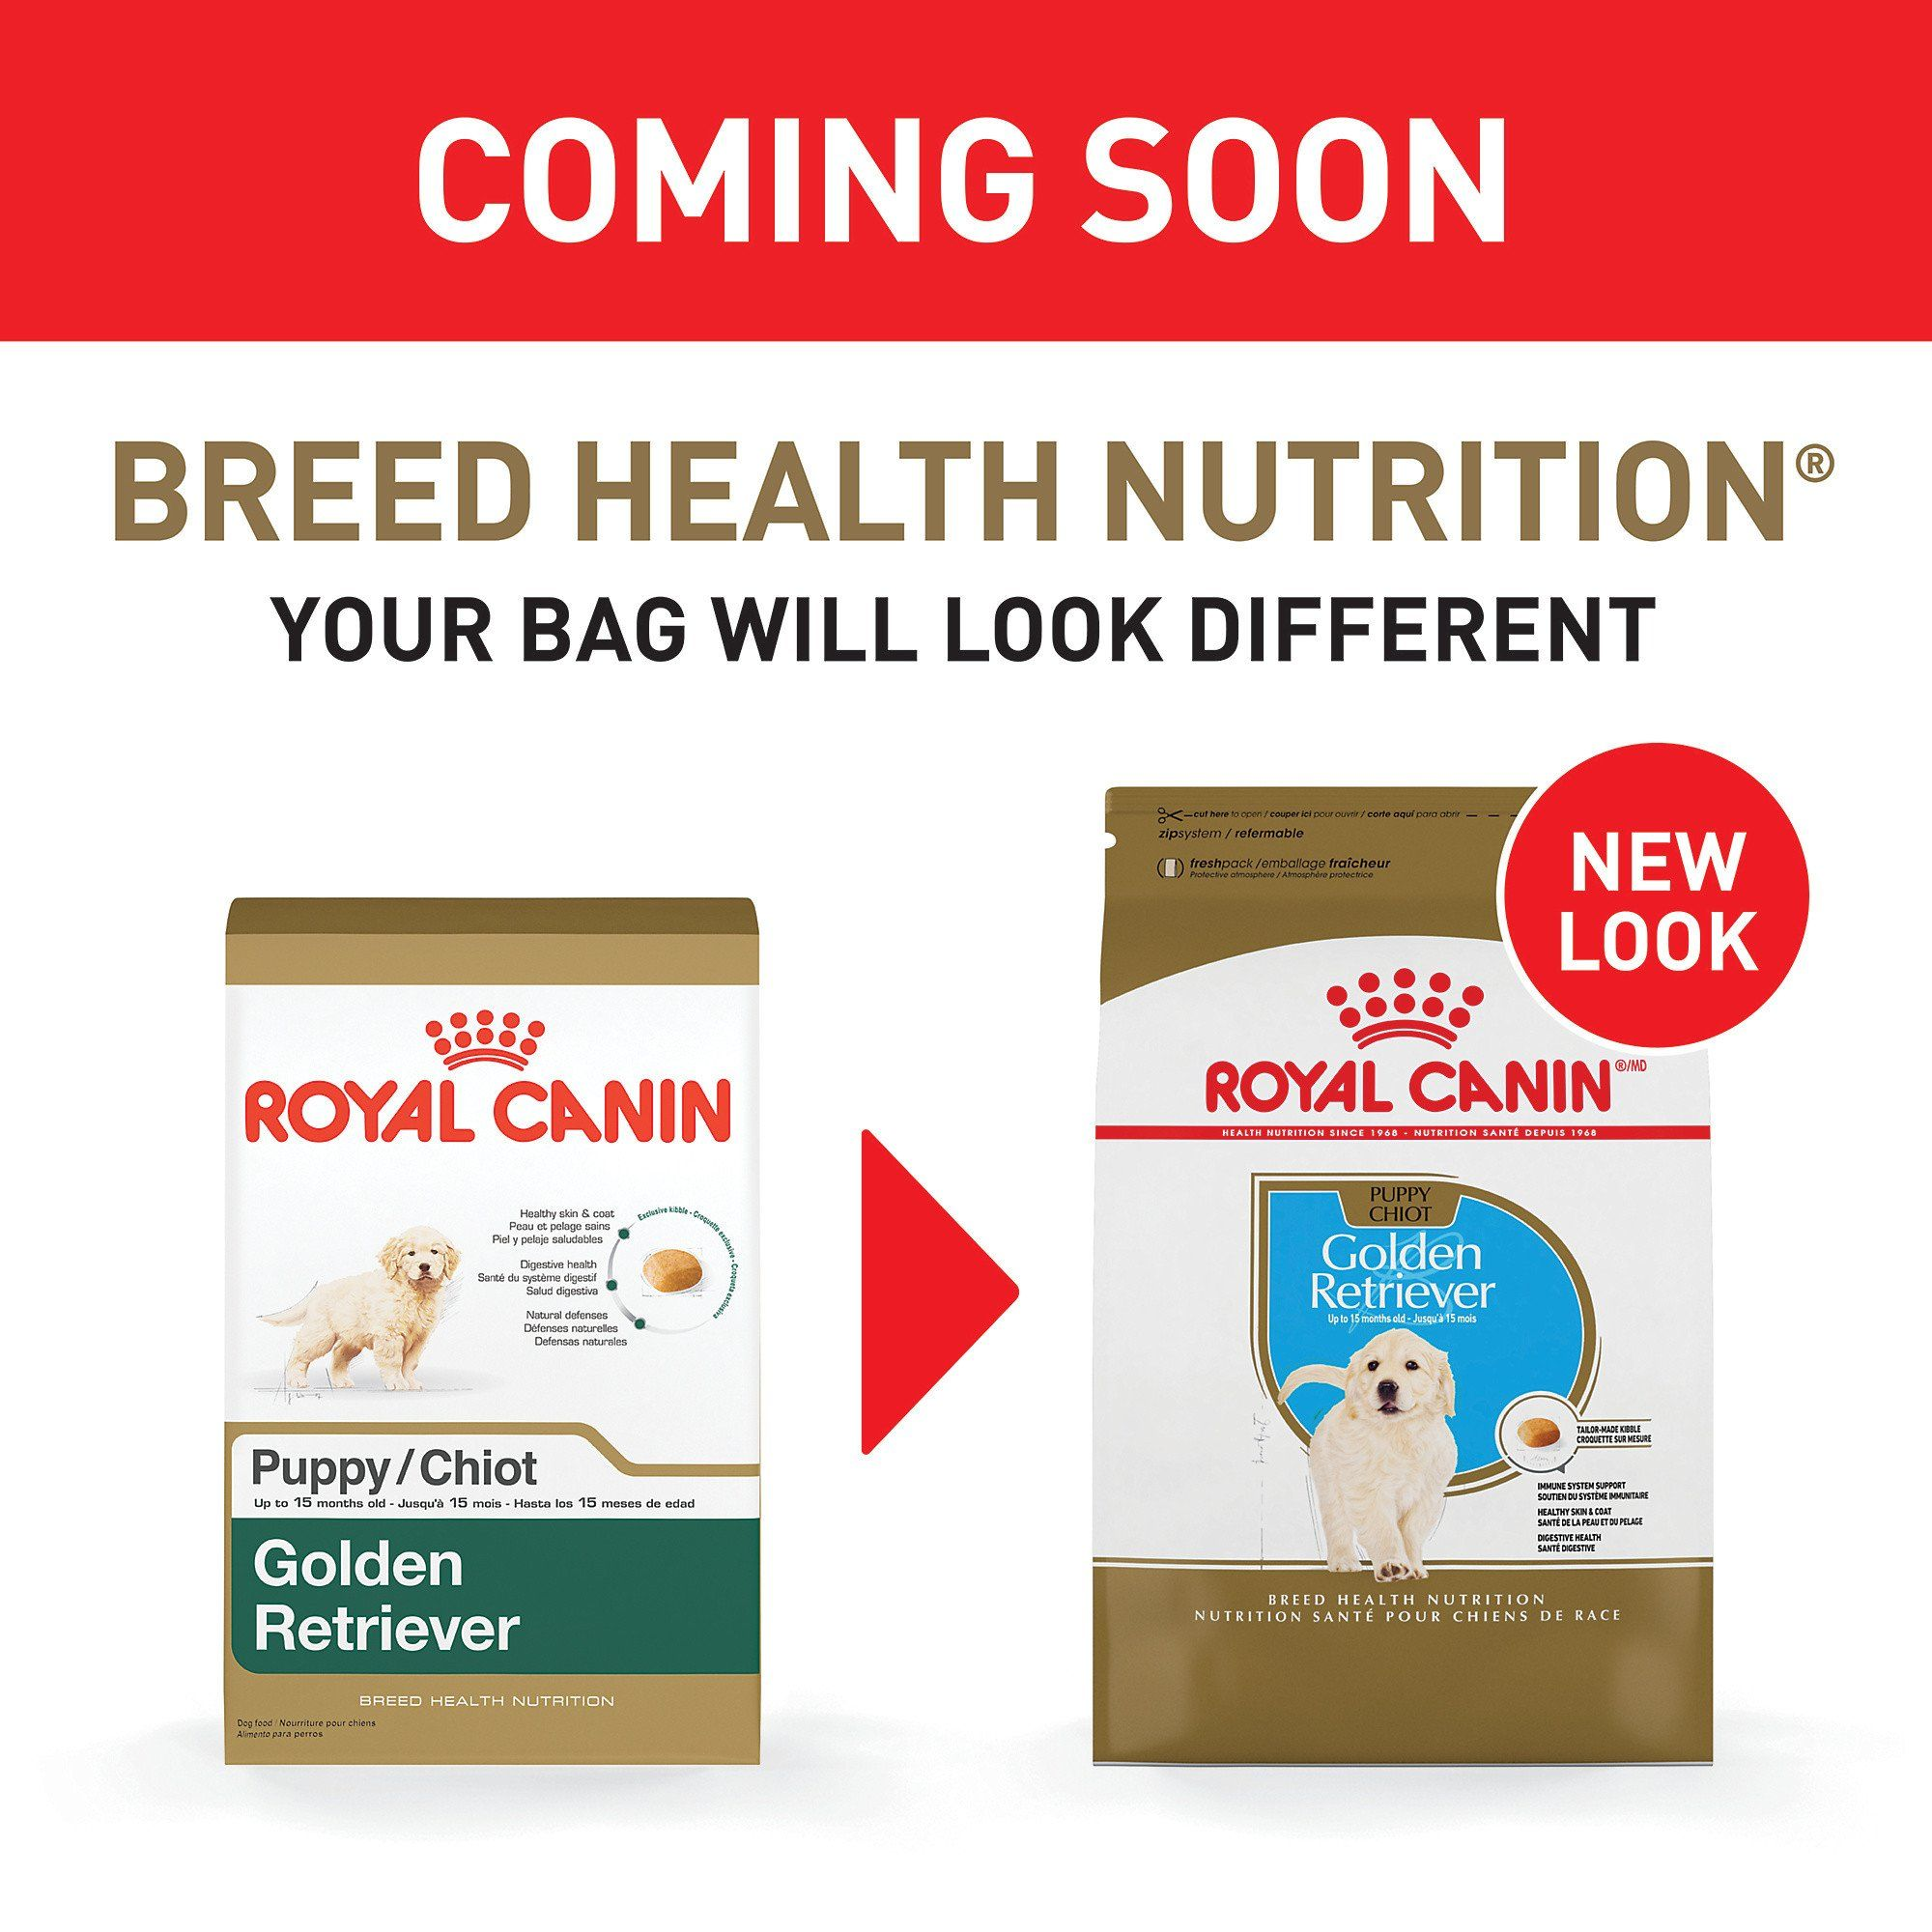 Royal Canin Golden Retriever Puppy 12kg Dog Food At Lowest Price